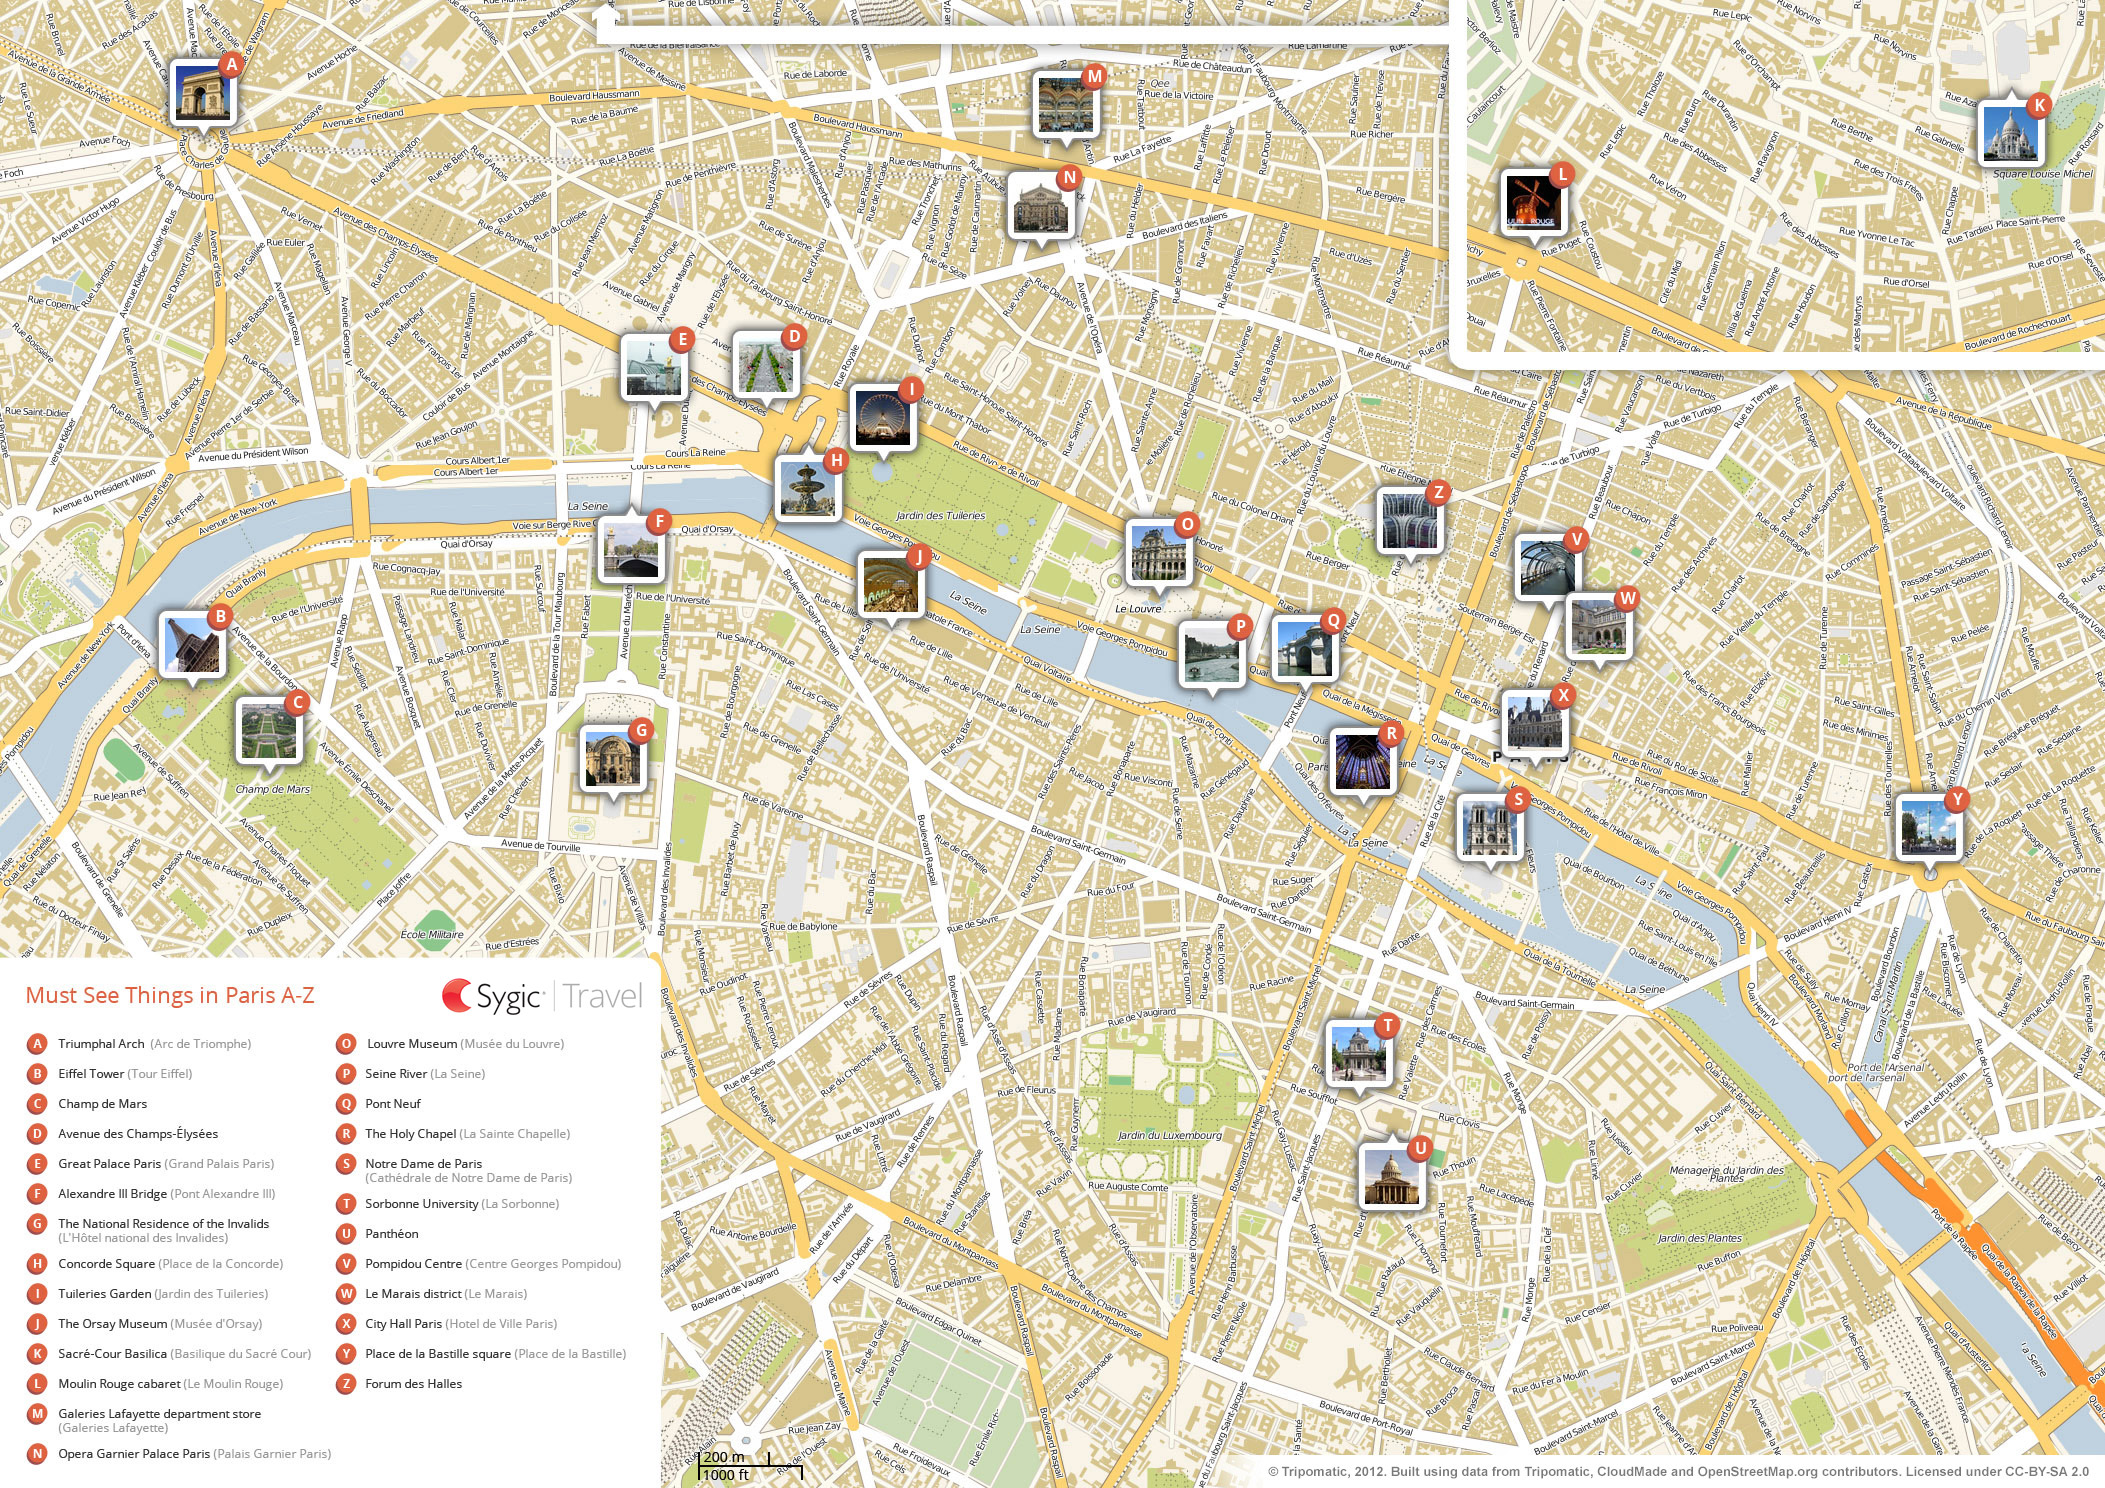 Paris Printable Tourist Map – Map Of Central London For Tourists